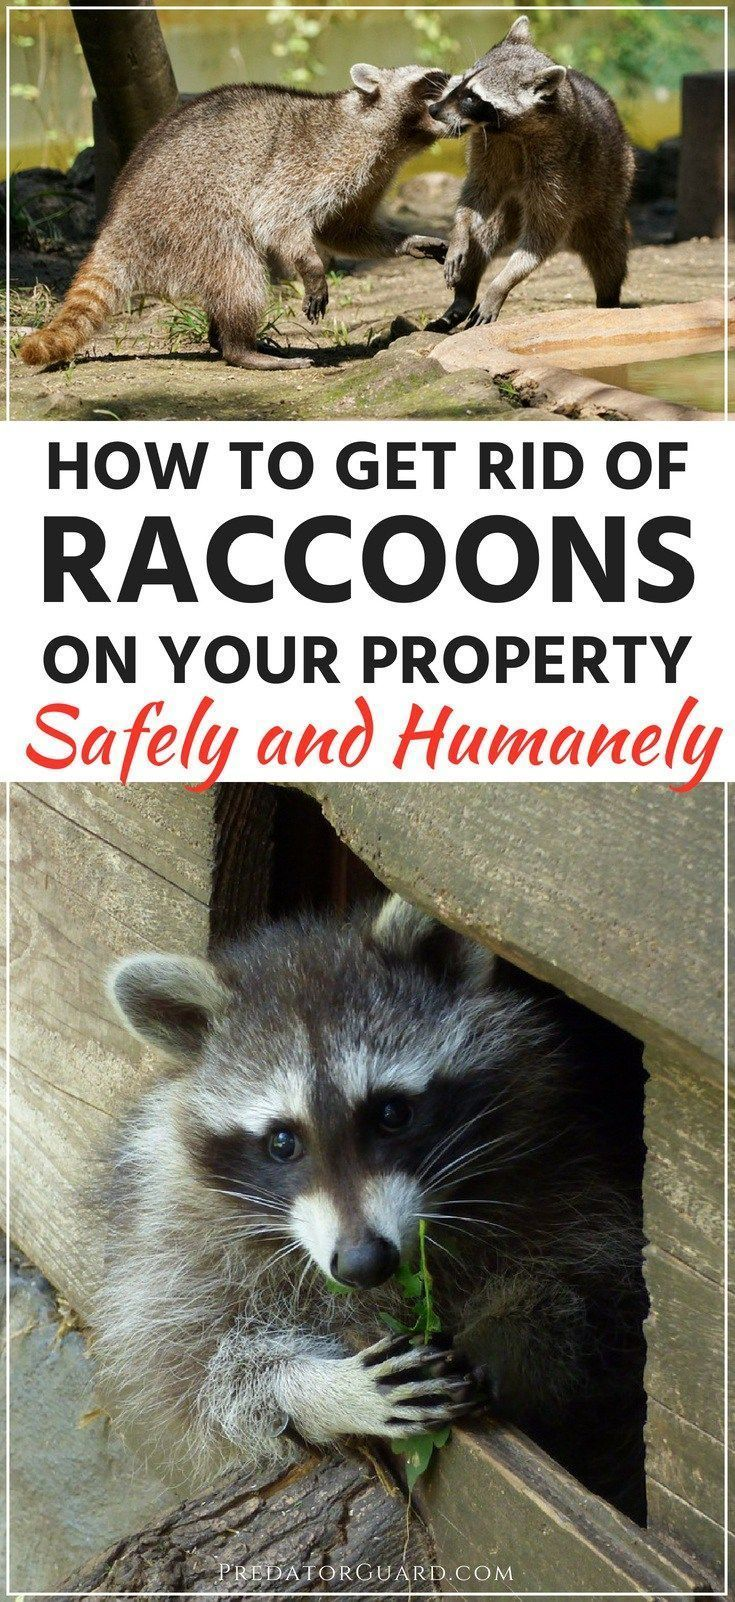 How To Get Rid of Raccoons | Getting rid of raccoons ...